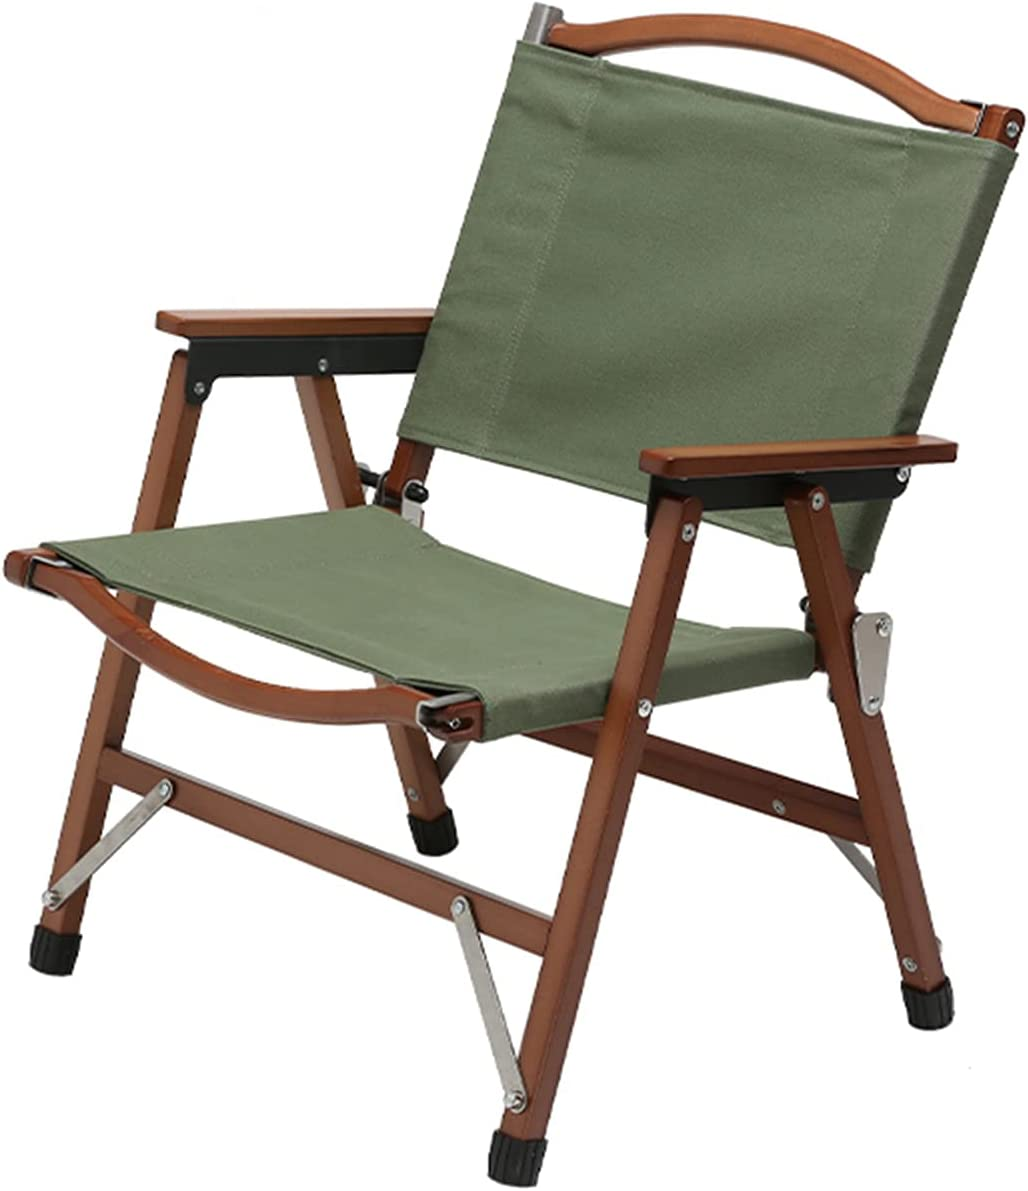 FXBH Camping Wooden Many popular brands Chair Max 64% OFF Fishing Portable Folding Outdoor